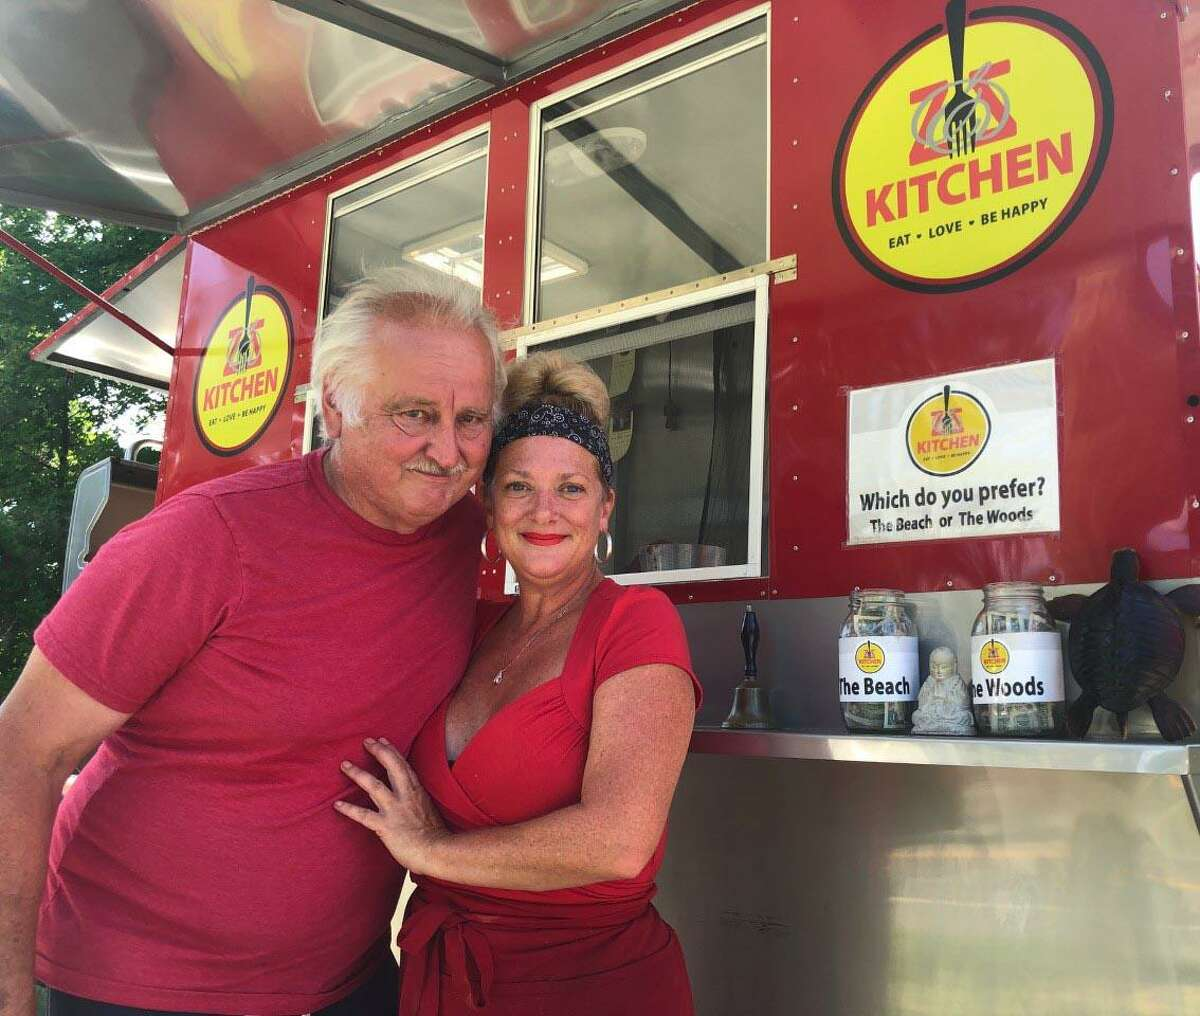 Patti and Ted Zaloski of New Milford opened Zz Kitchen, a food cart housed at the parking lot at Conn's Pond in New Milford, in May.